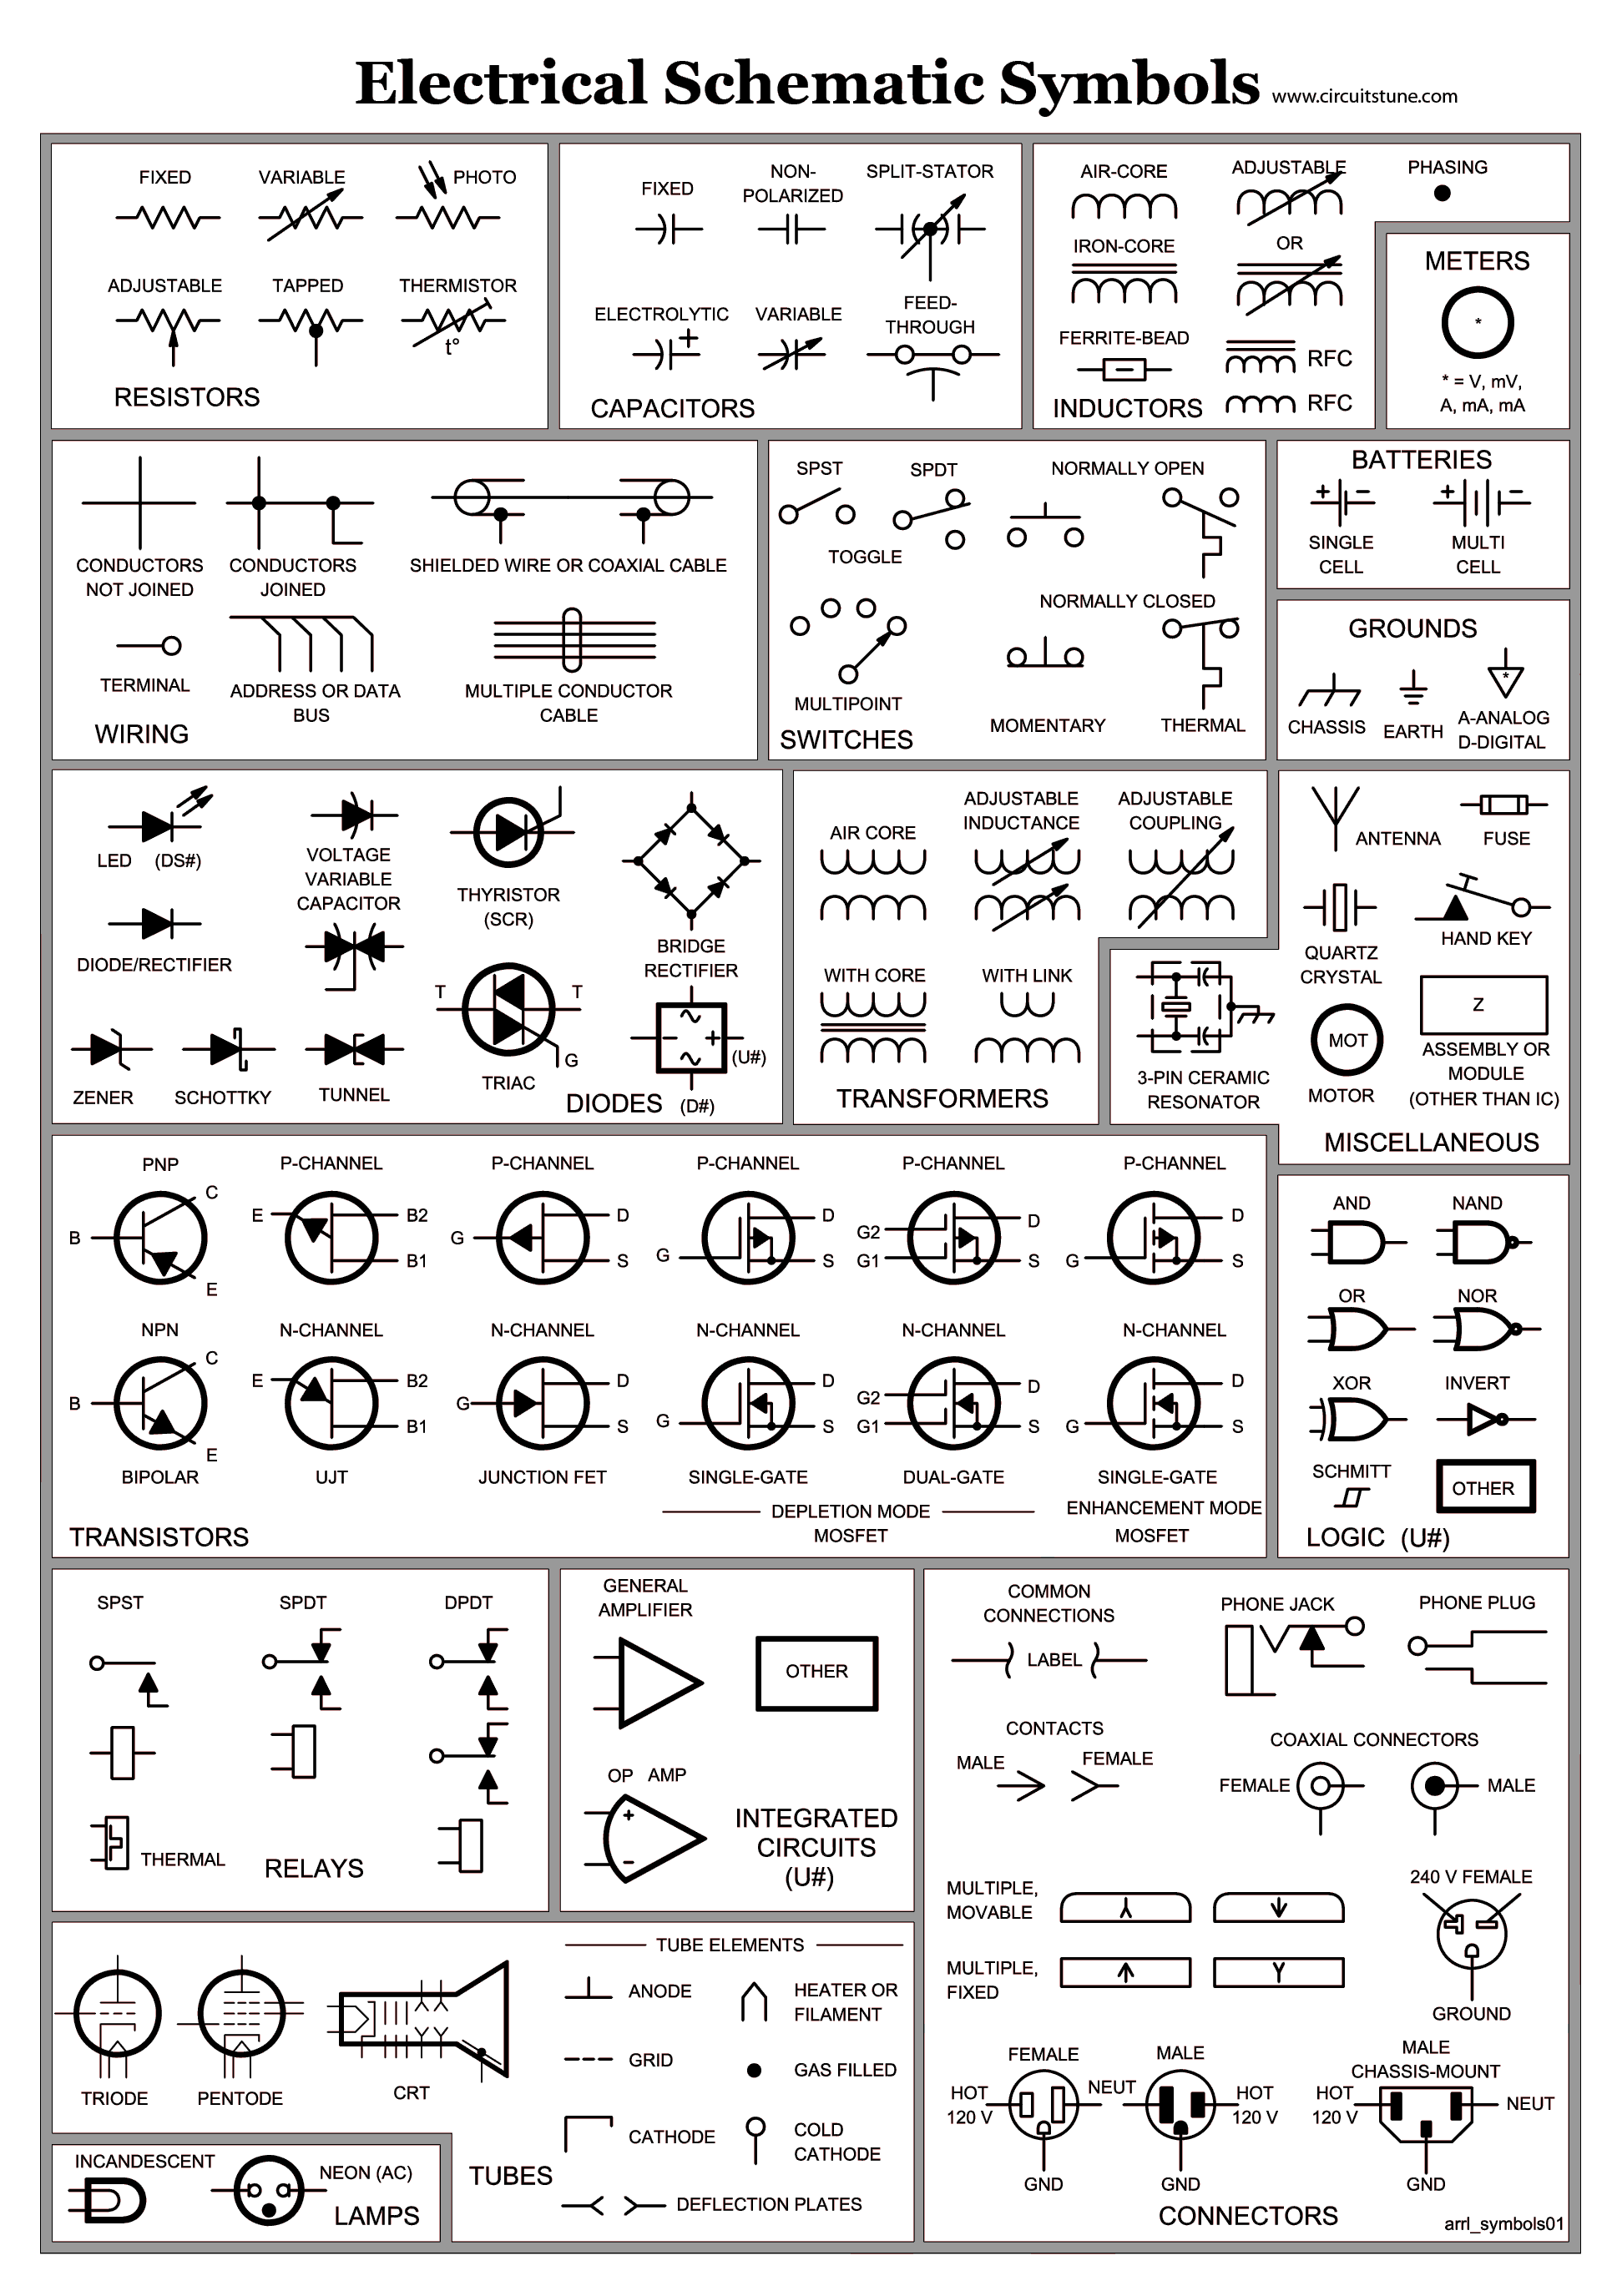 electrical schematic symbols wire diagram symbols automotive wiring rh pinterest com Basic Wiring Diagram Symbols Hydraulic Diagram Symbols